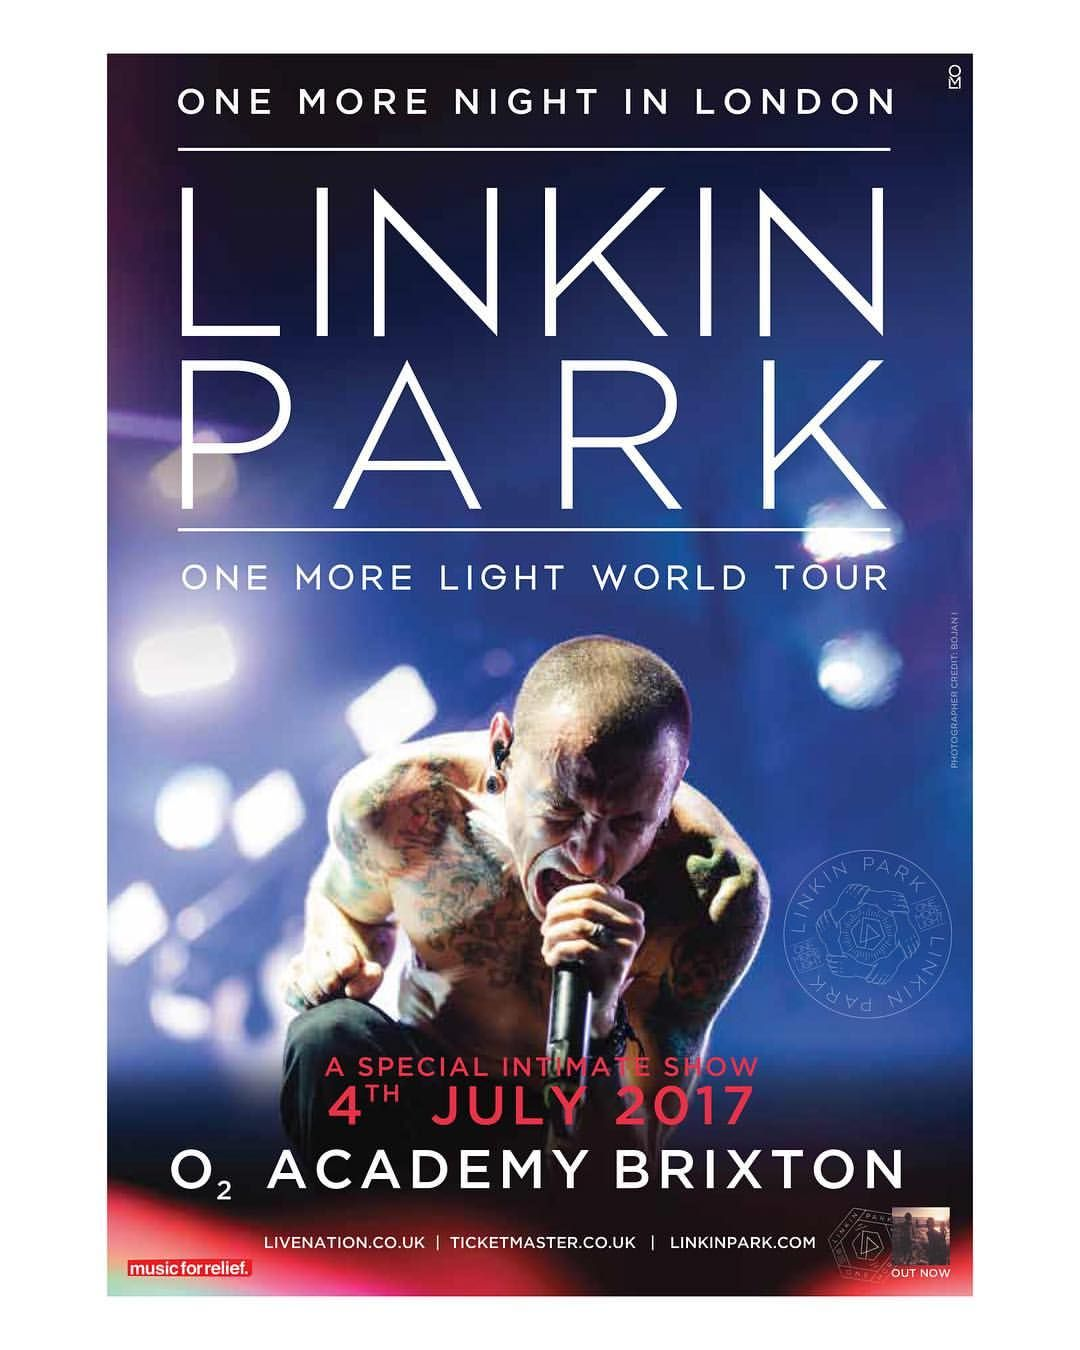 c0073e25a64830 Pin by tranquil on Music & Musicians / Grammy's | Linkin park, One more  night, Brixton